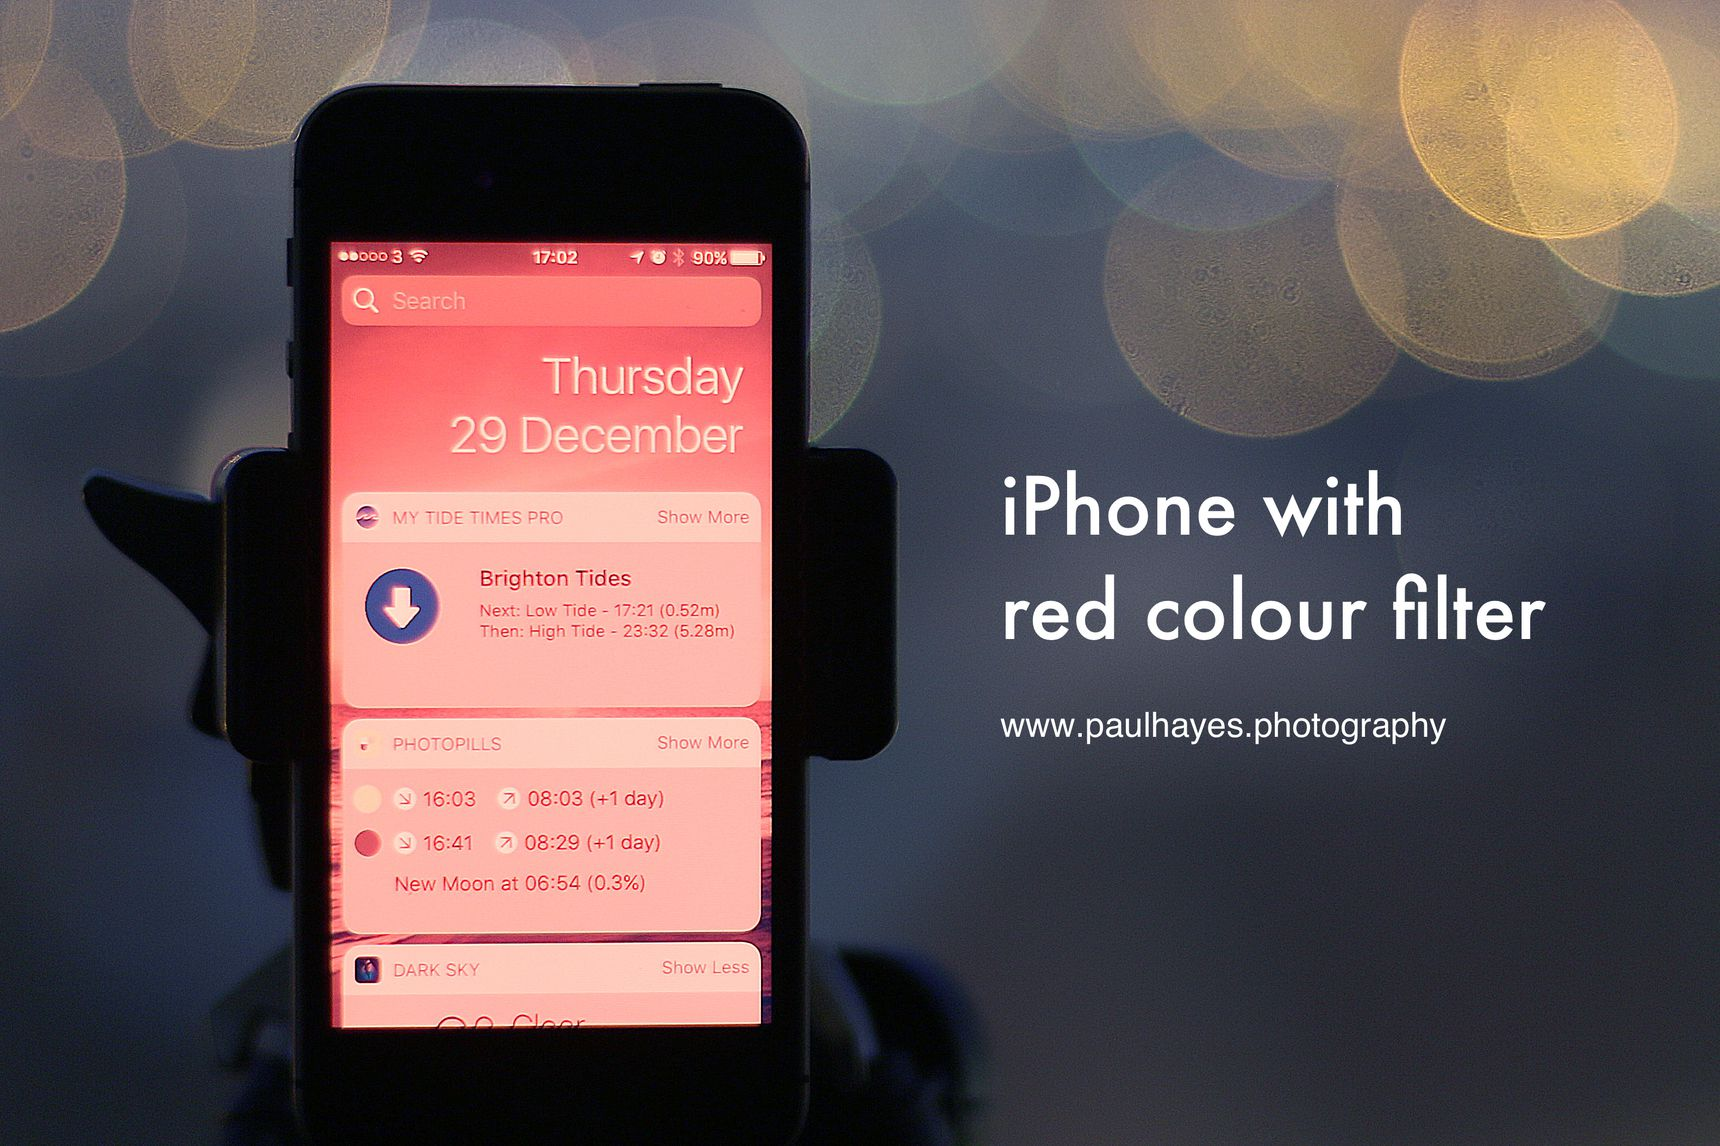 An iPhone with a red colour filter enabled